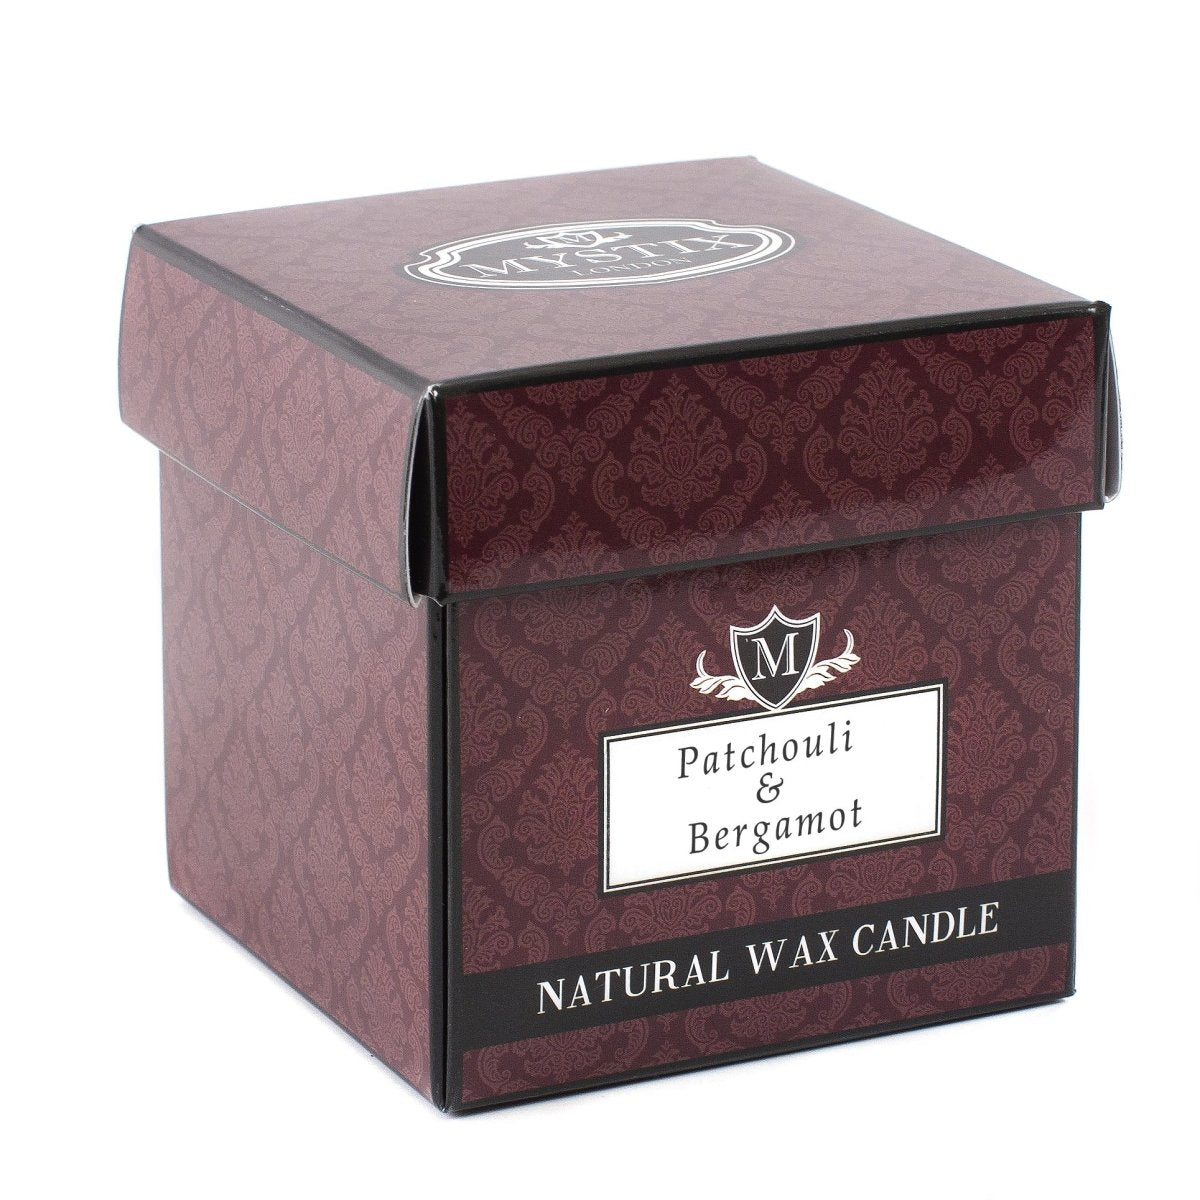 Patchouli & Bergamot Scented Candle - Mystic Moments UK